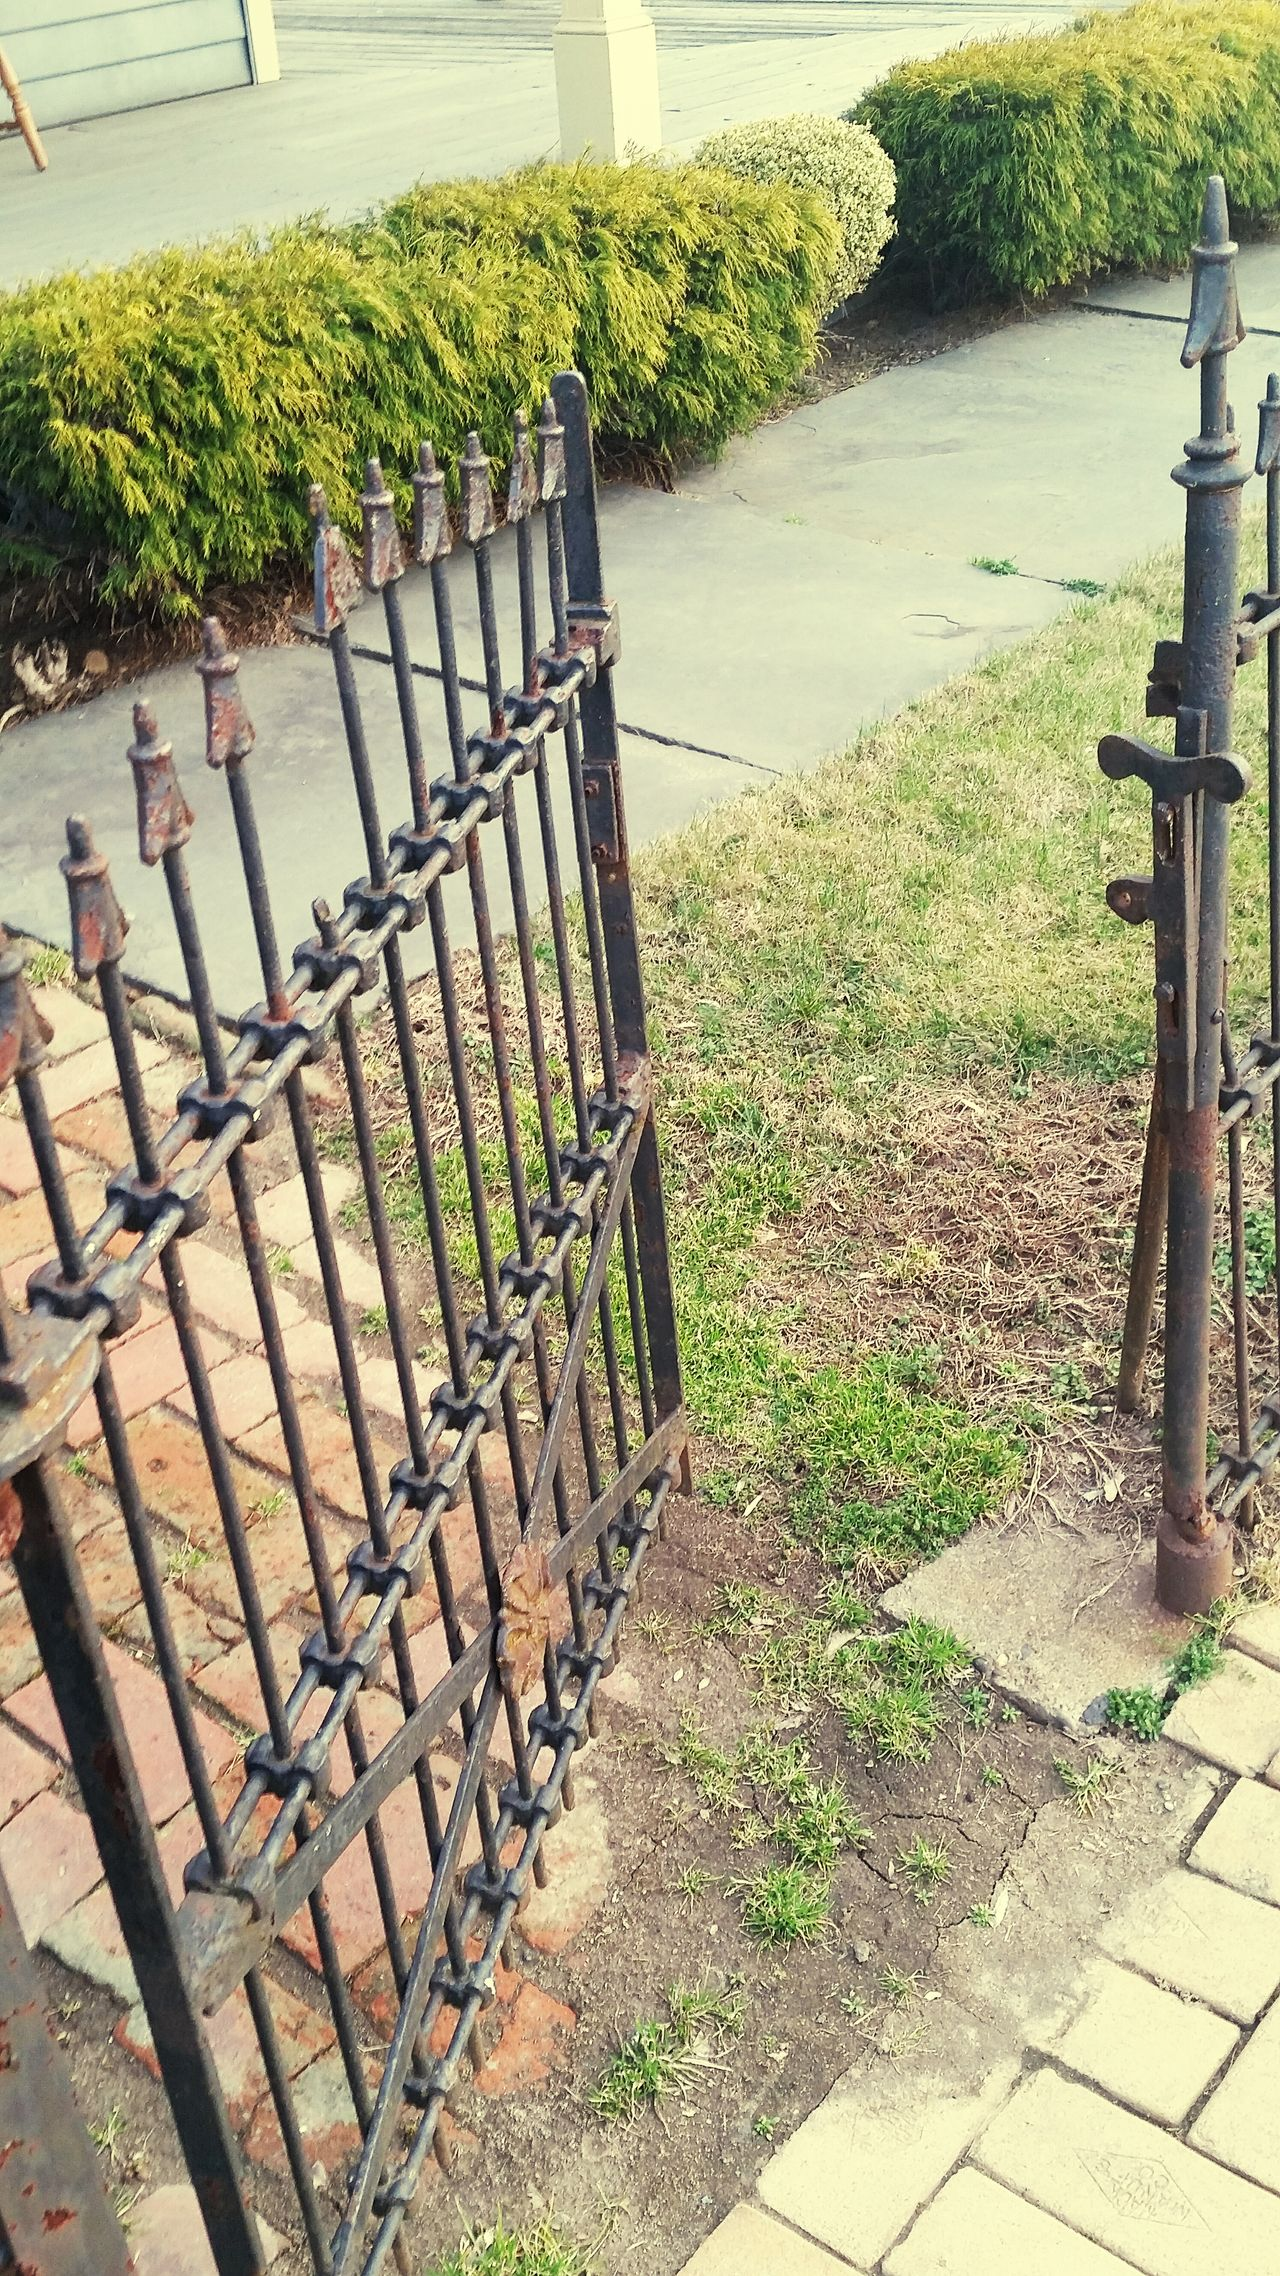 USA Bucks County Pennsylvania Wrought Iron Gate Wrought Iron Rust Open Gate My Quirky Style My View